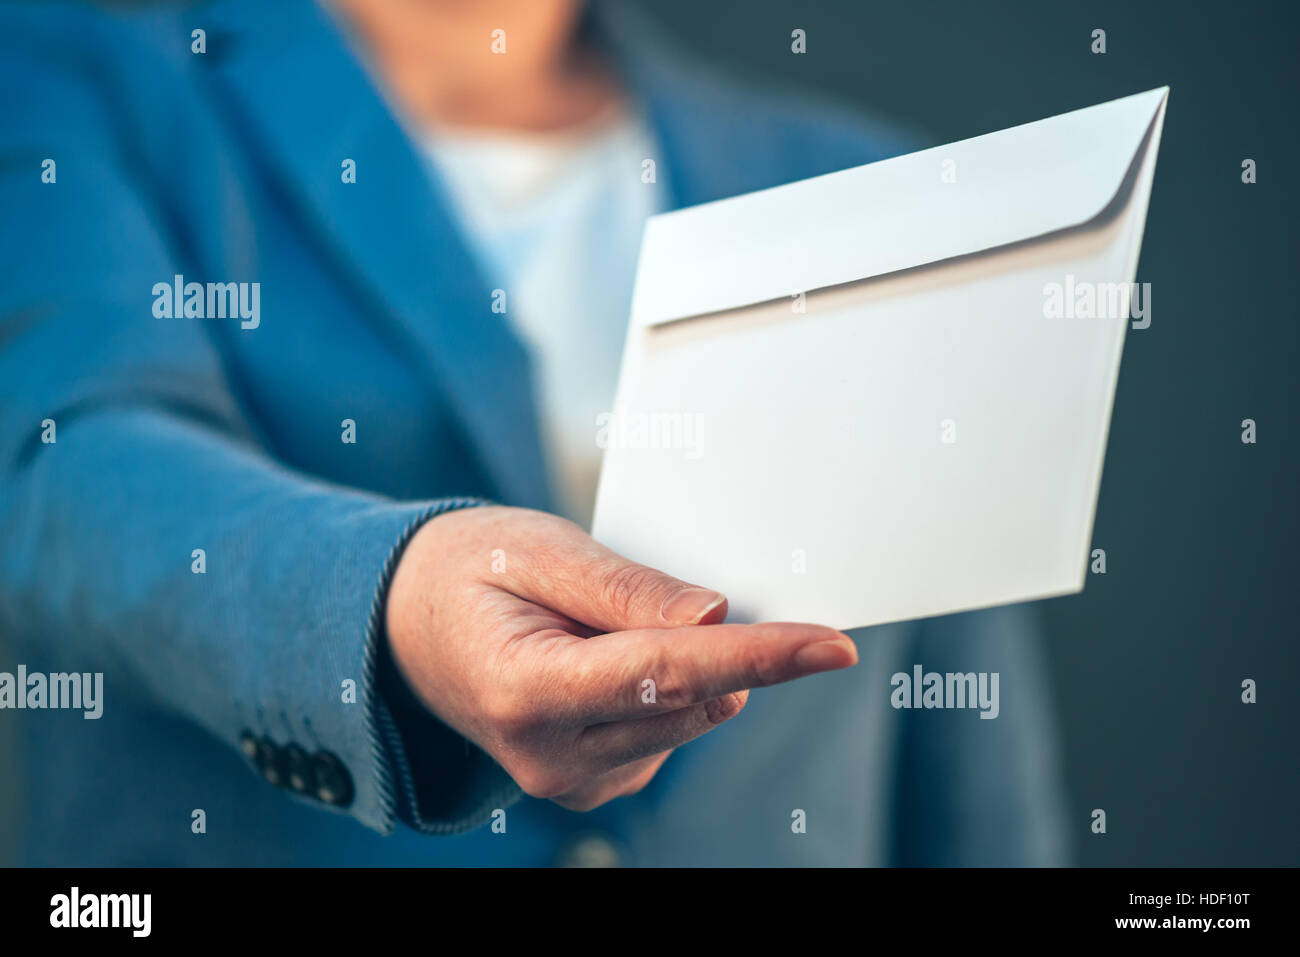 Job offer letter stock photos job offer letter stock images alamy businesswoman offering white envelope as bribe concept of corruption in business activity stock image thecheapjerseys Gallery